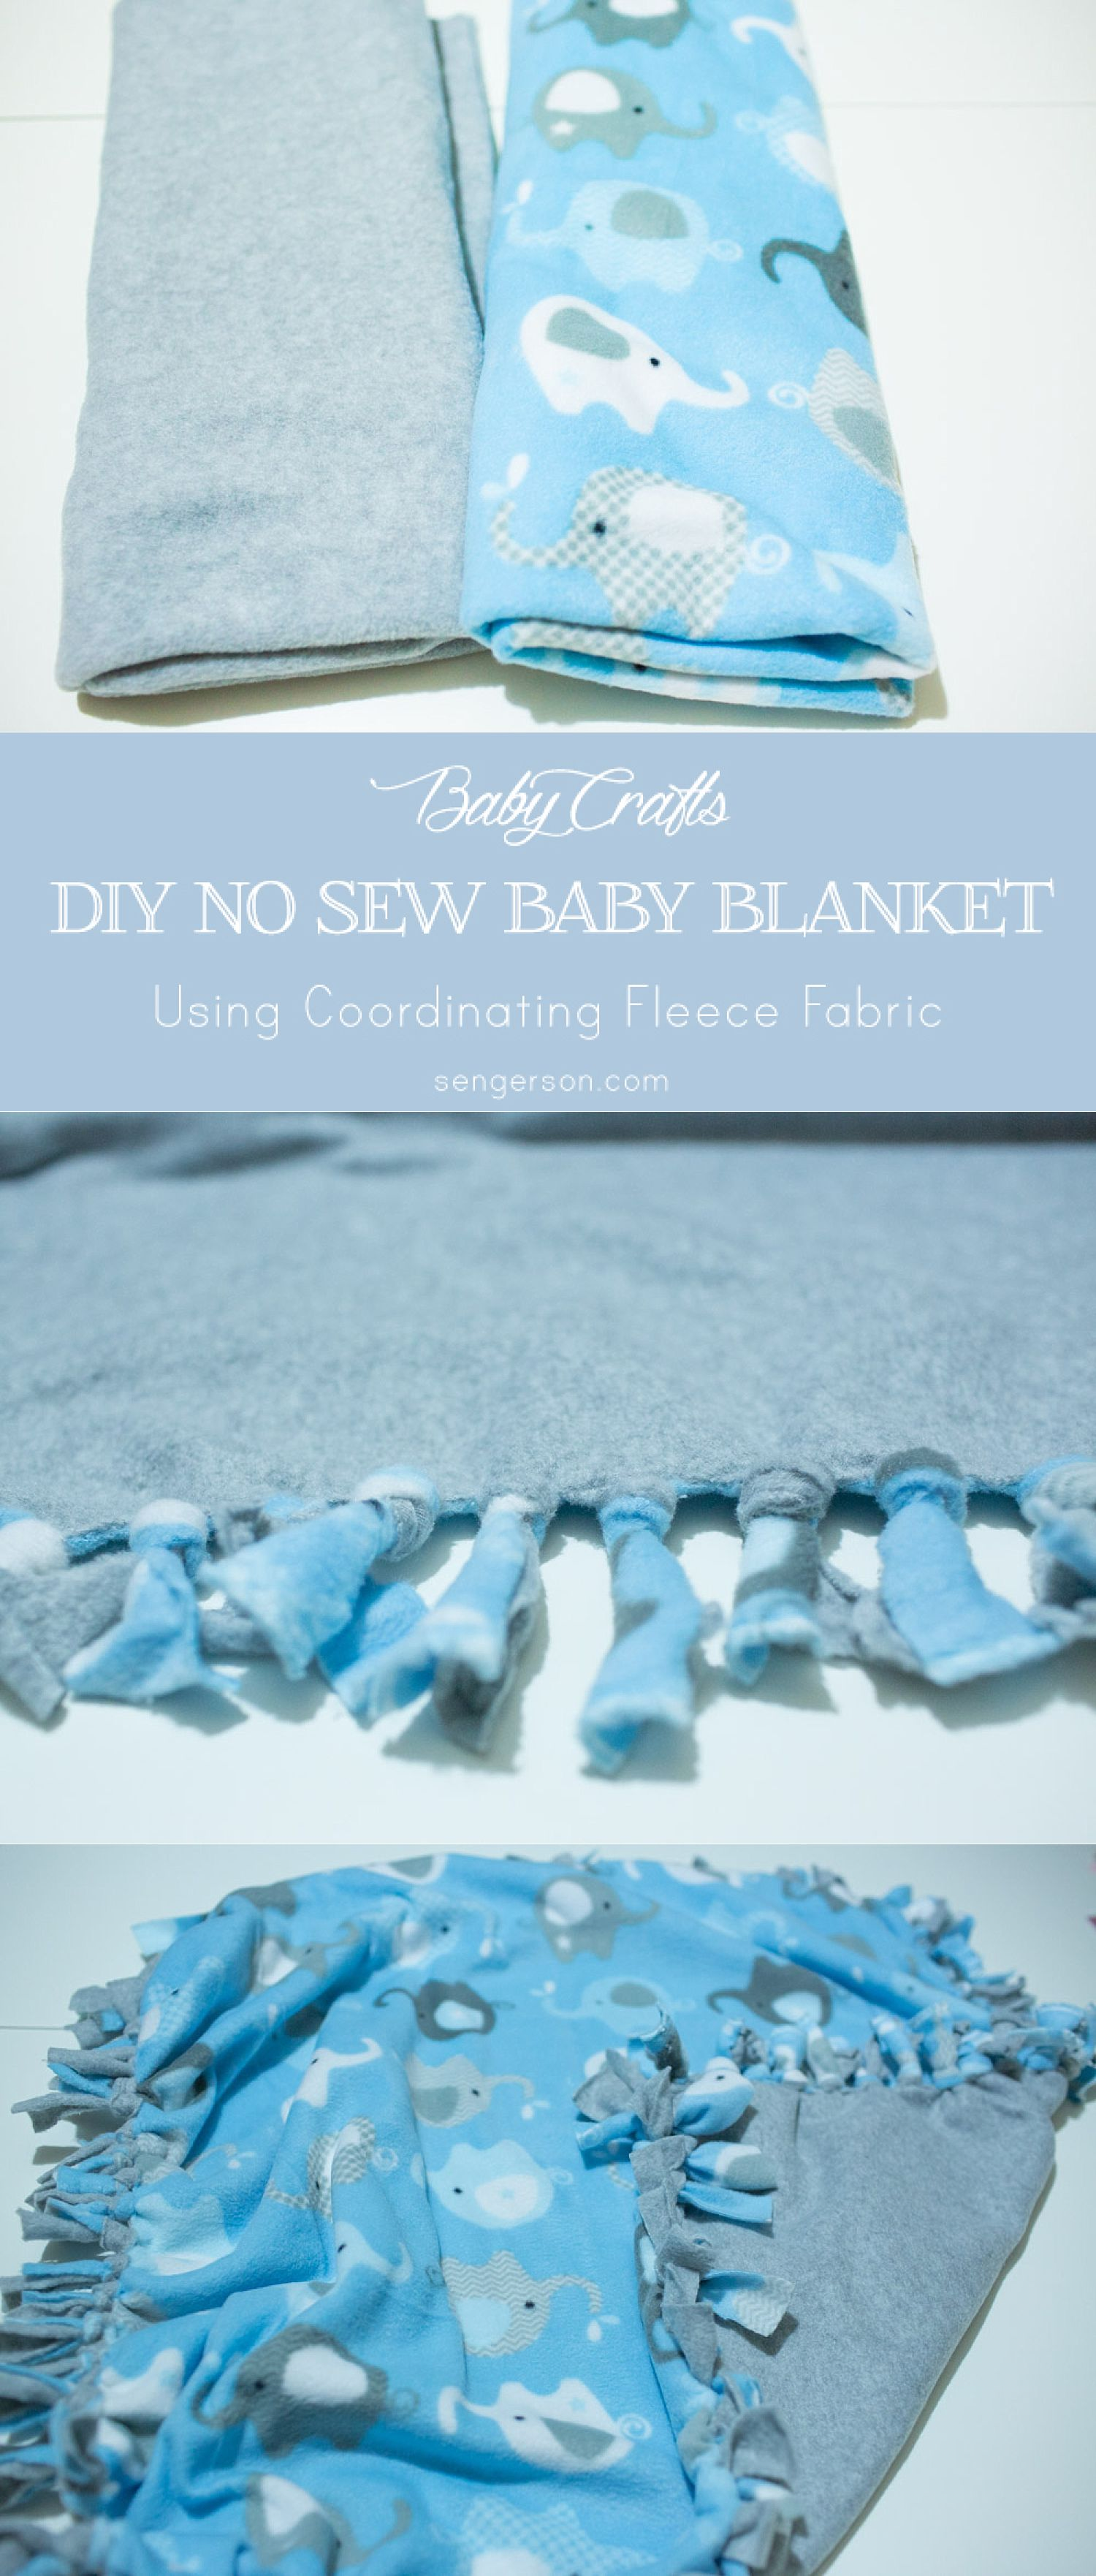 DIY No Sew Baby Blanket